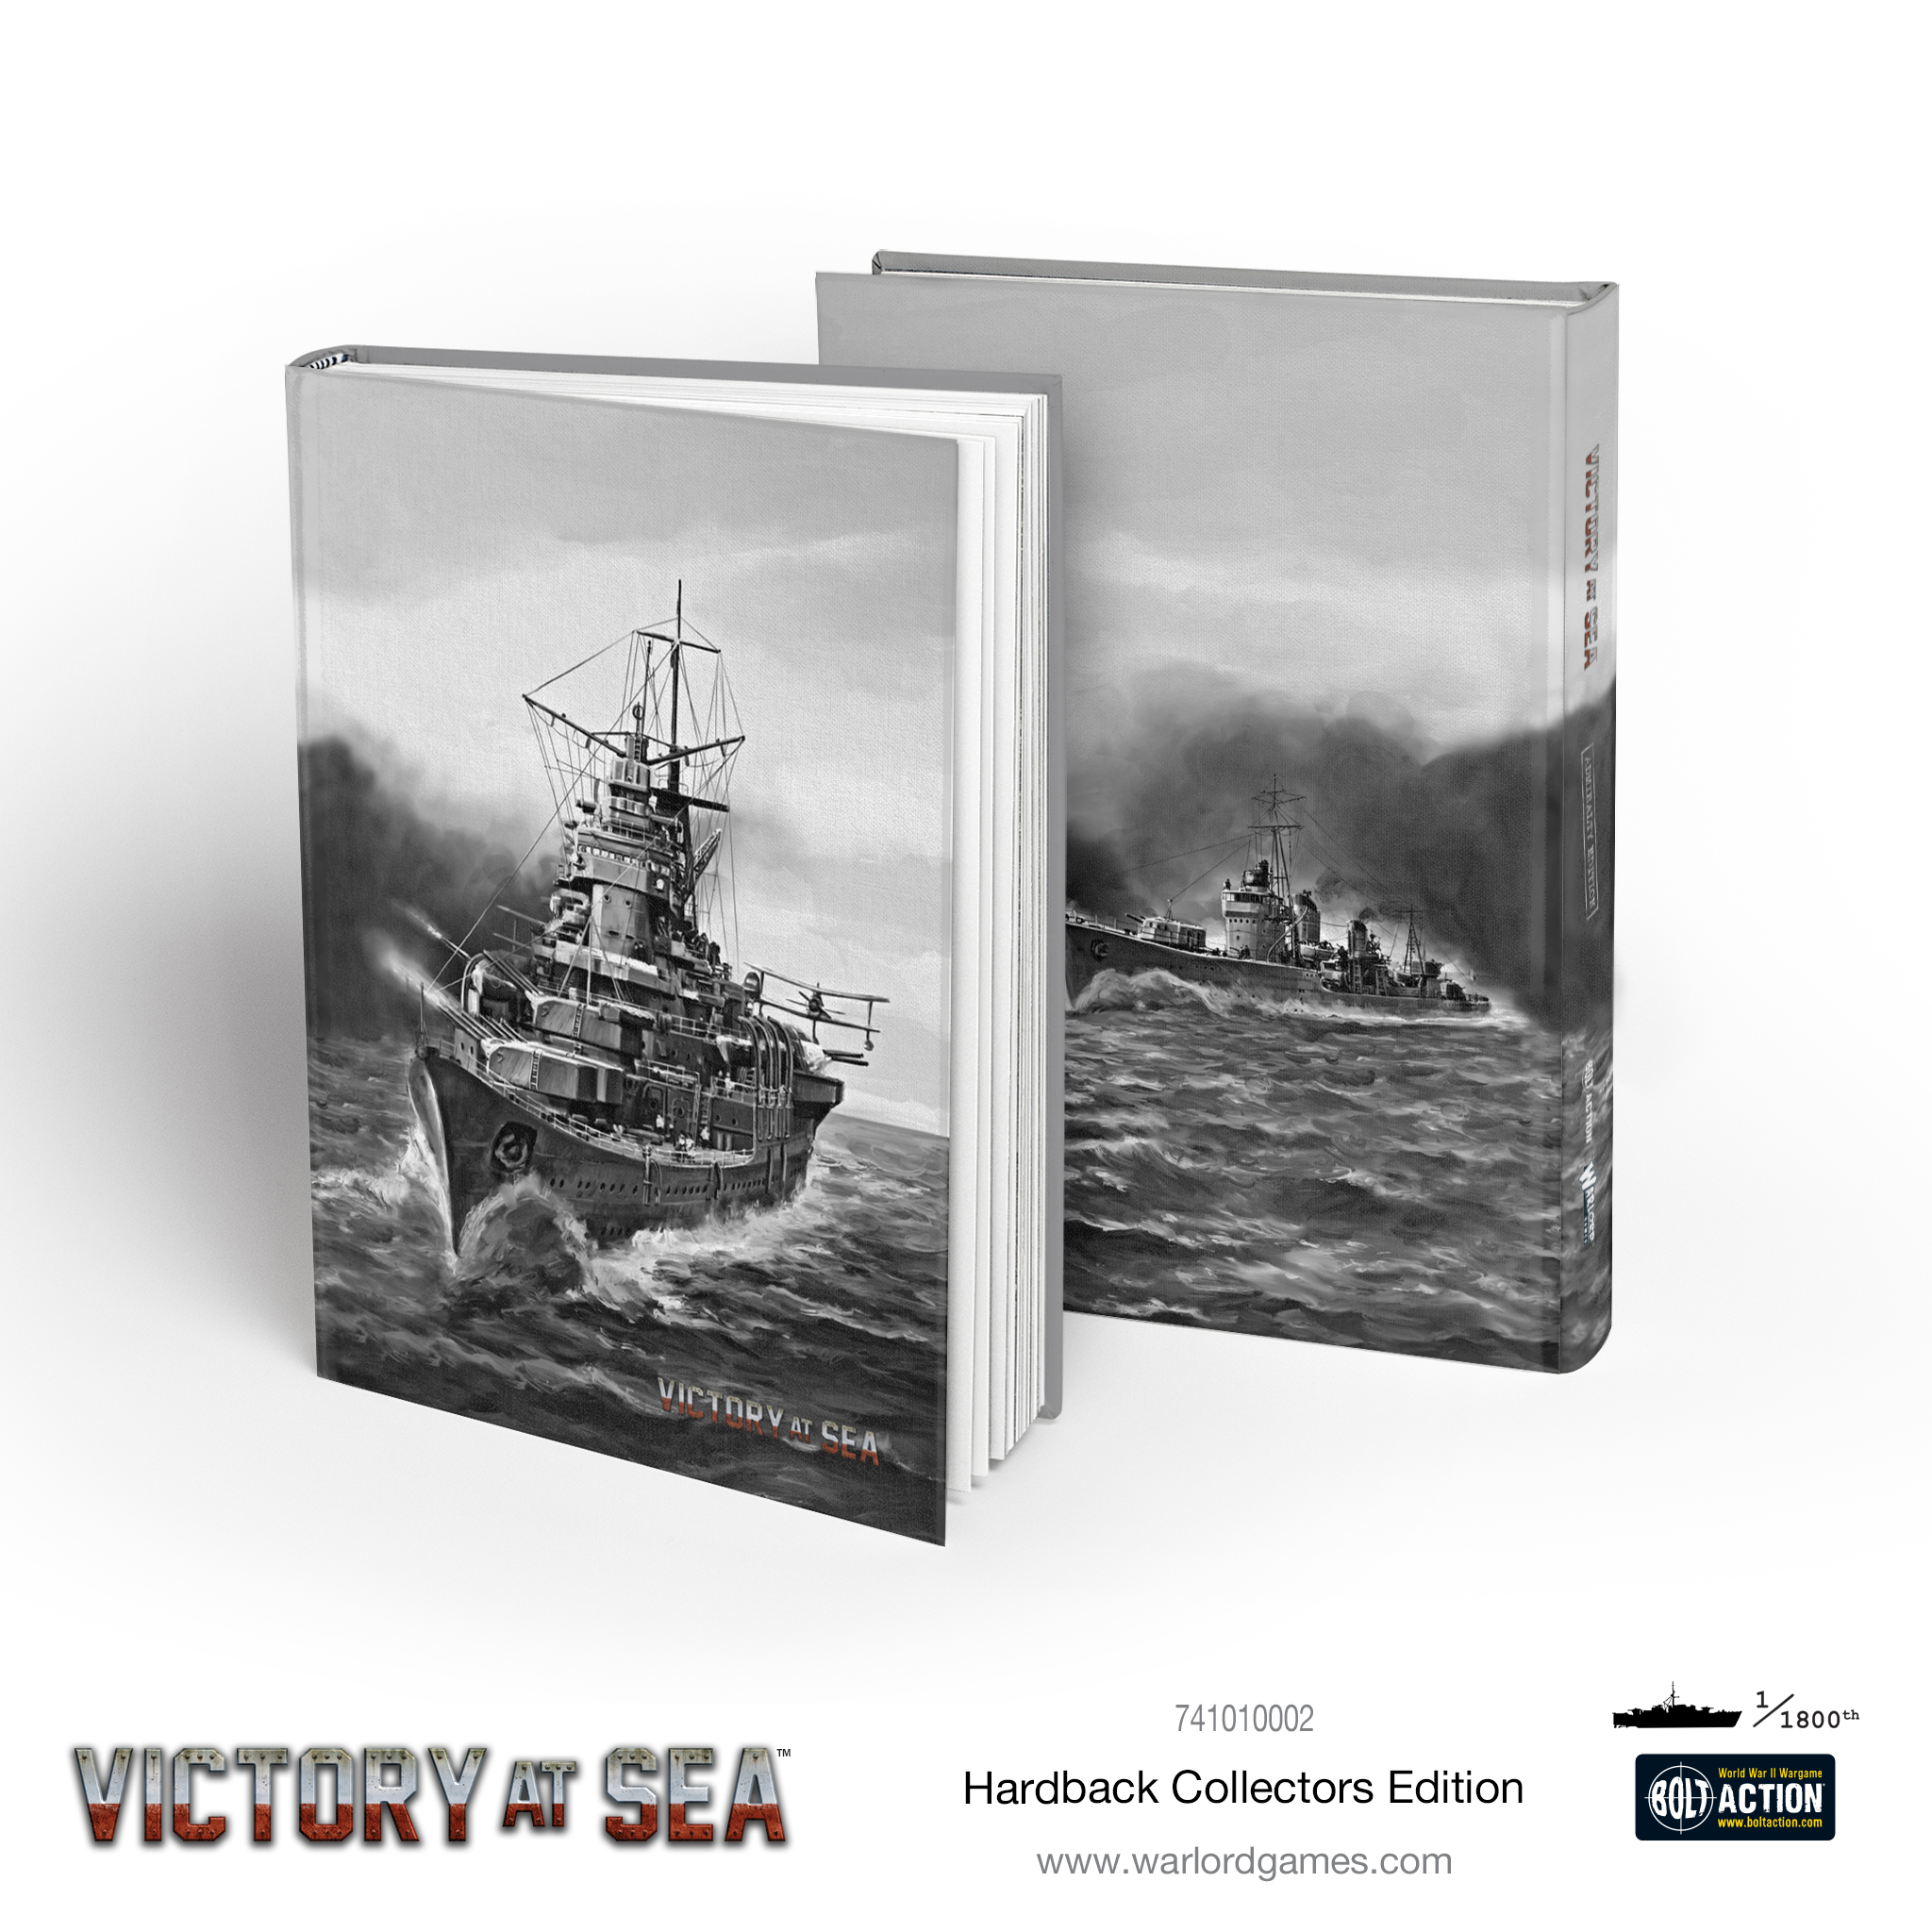 https://store.warlordgames.com/collections/victory-at-sea/products/victory-at-sea-admiralty-edition-hardback-book